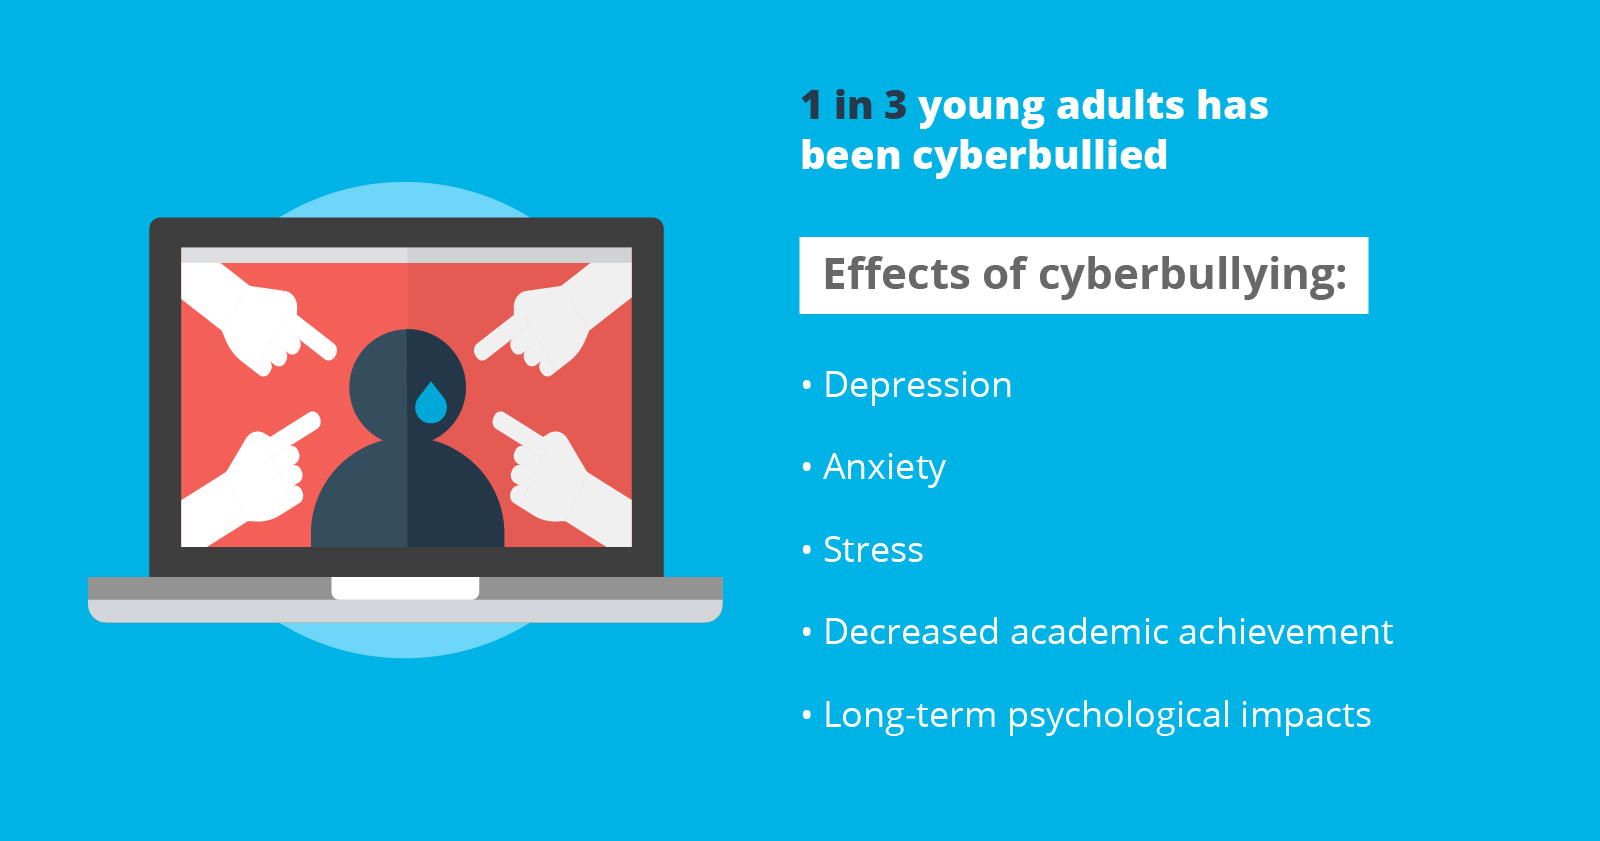 A brief list of some of the proven effects of cyberbullying